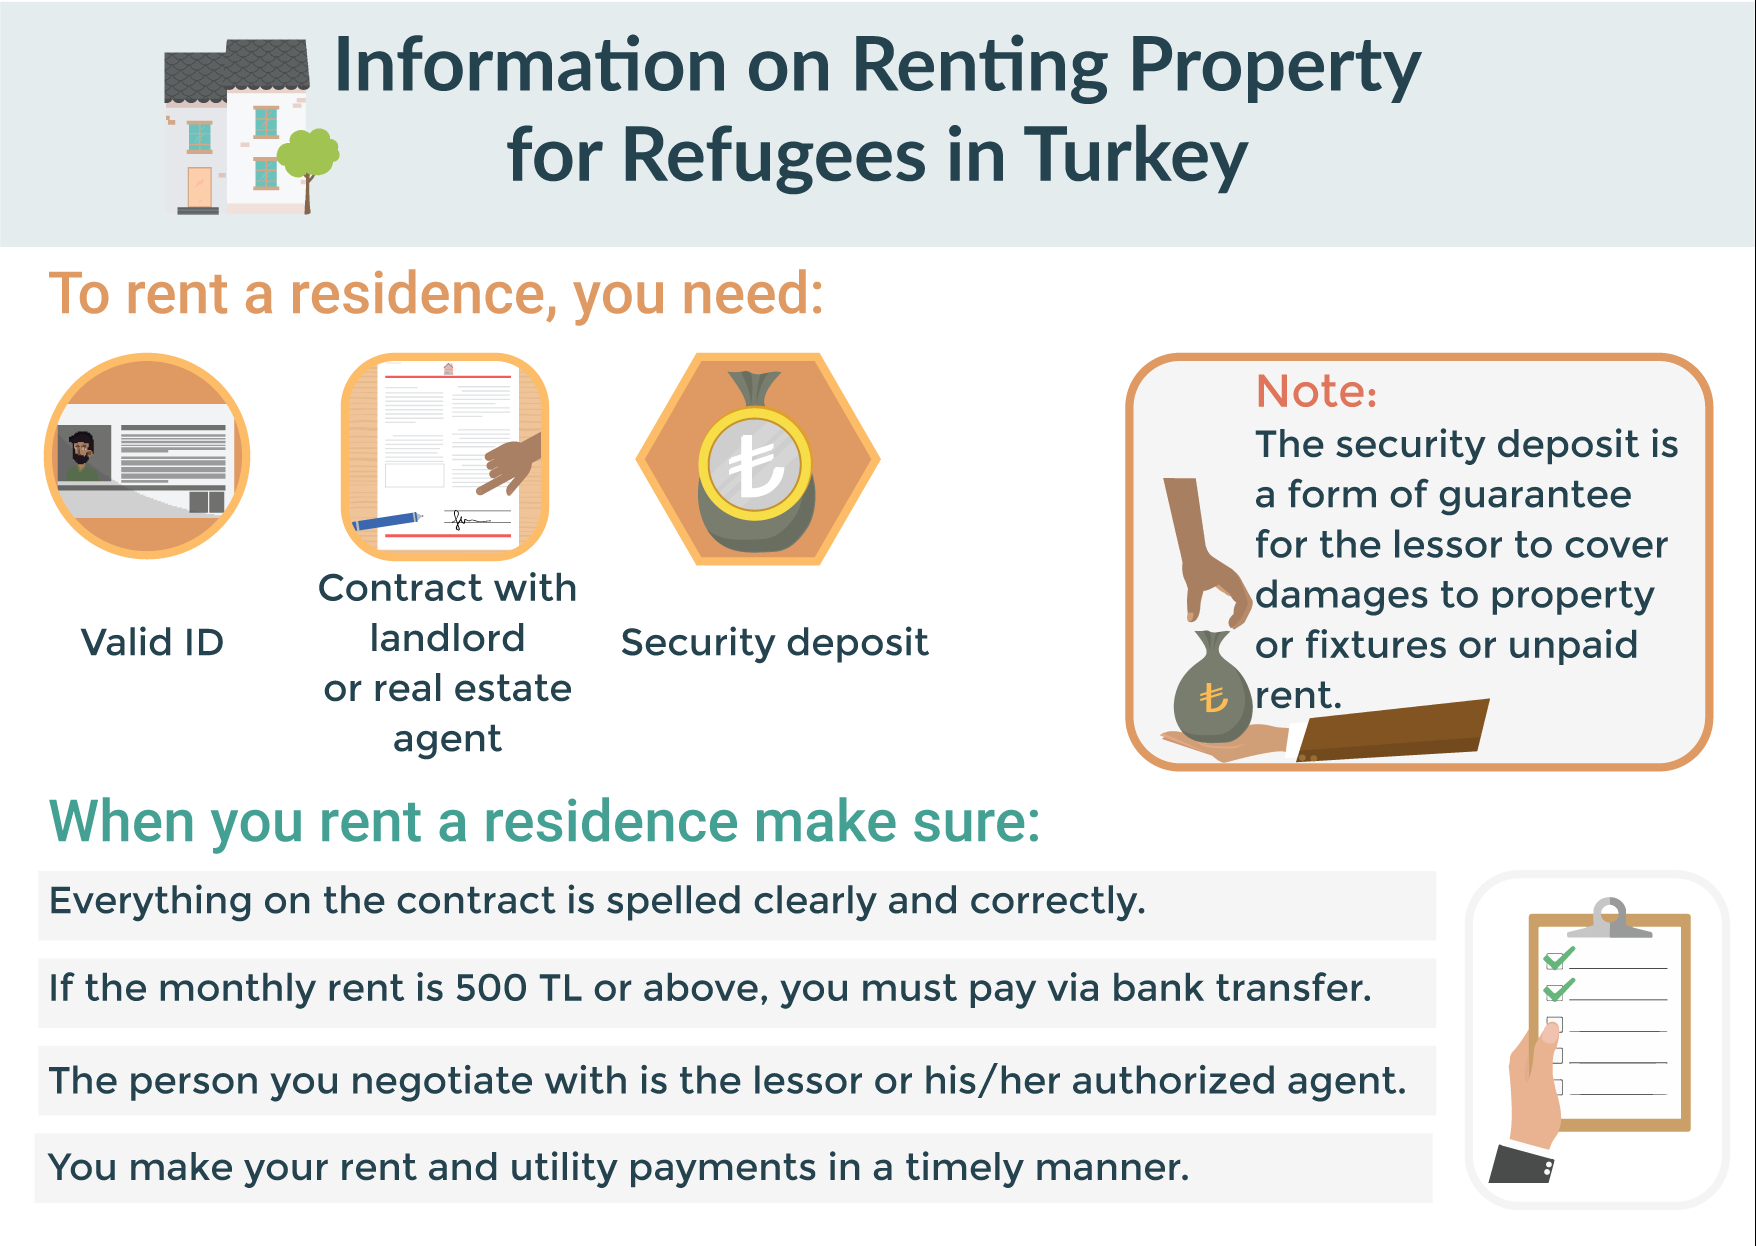 rent Renting Property for Refugees in Turkey Contract with landlord real estate agent Security deposit fixtures or unpaid rent. rent a residence pay via bank transfer utility payments